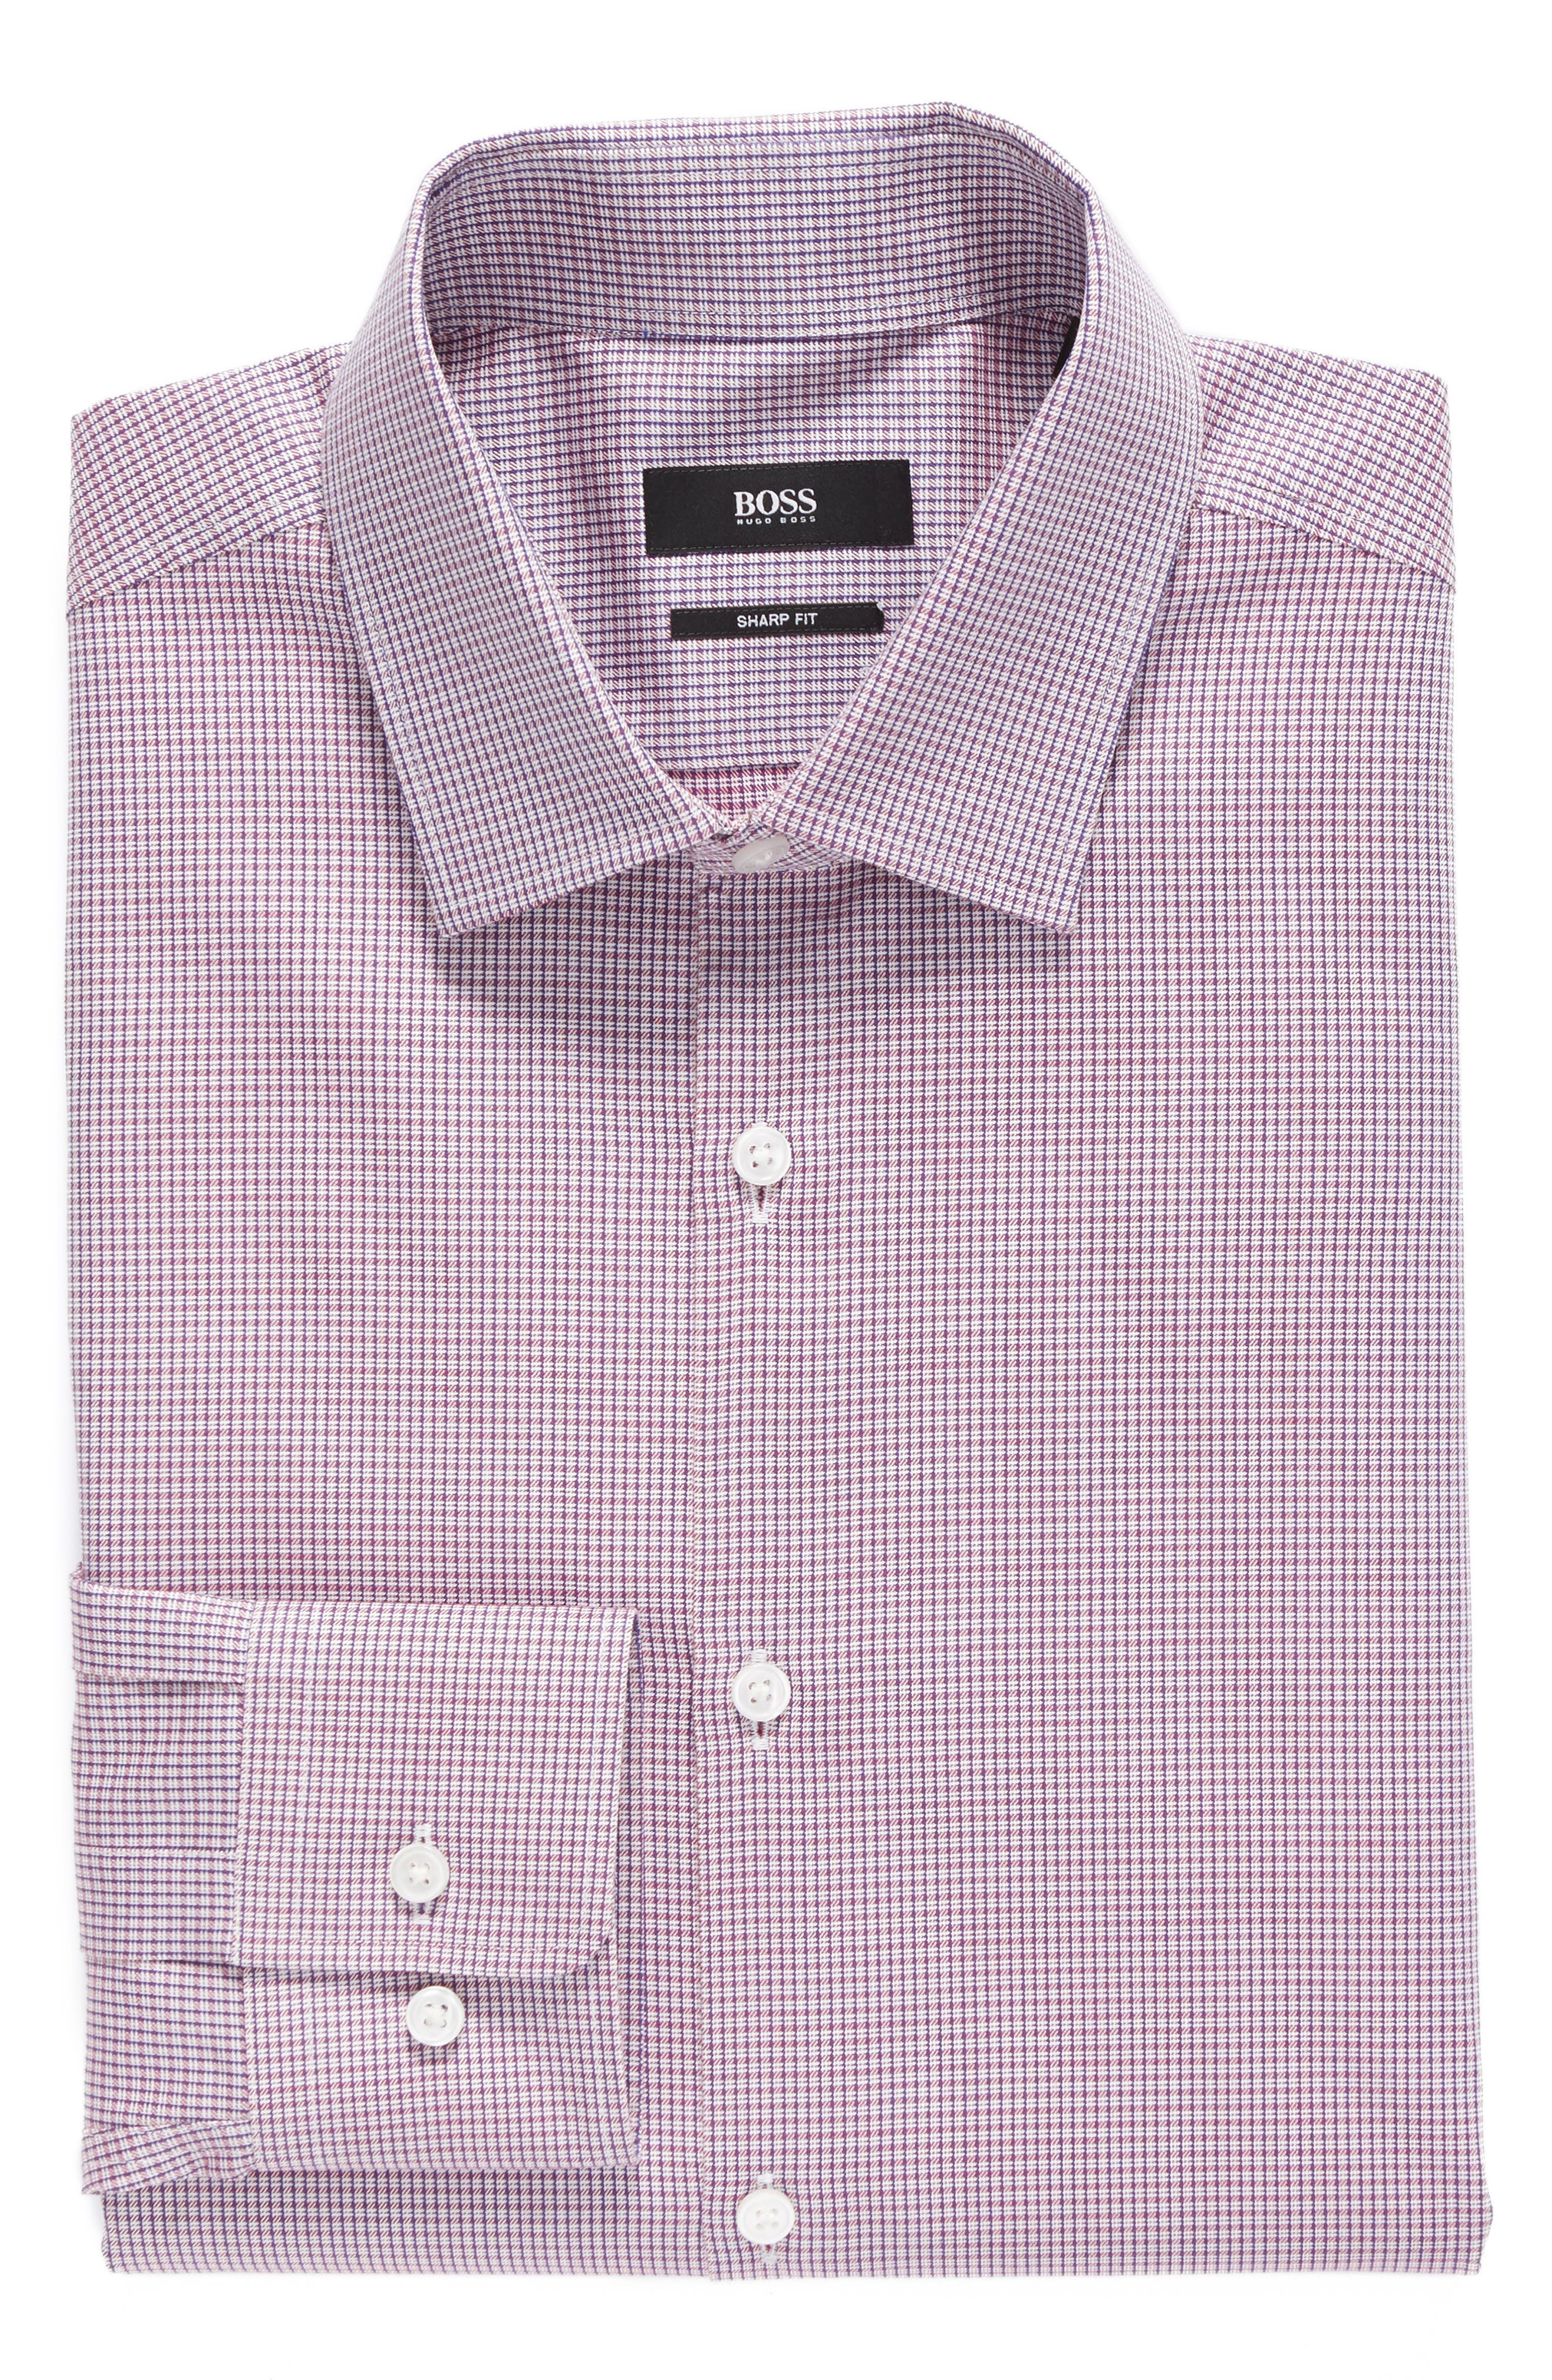 Sharp Fit Check Dress Shirt,                         Main,                         color, Red